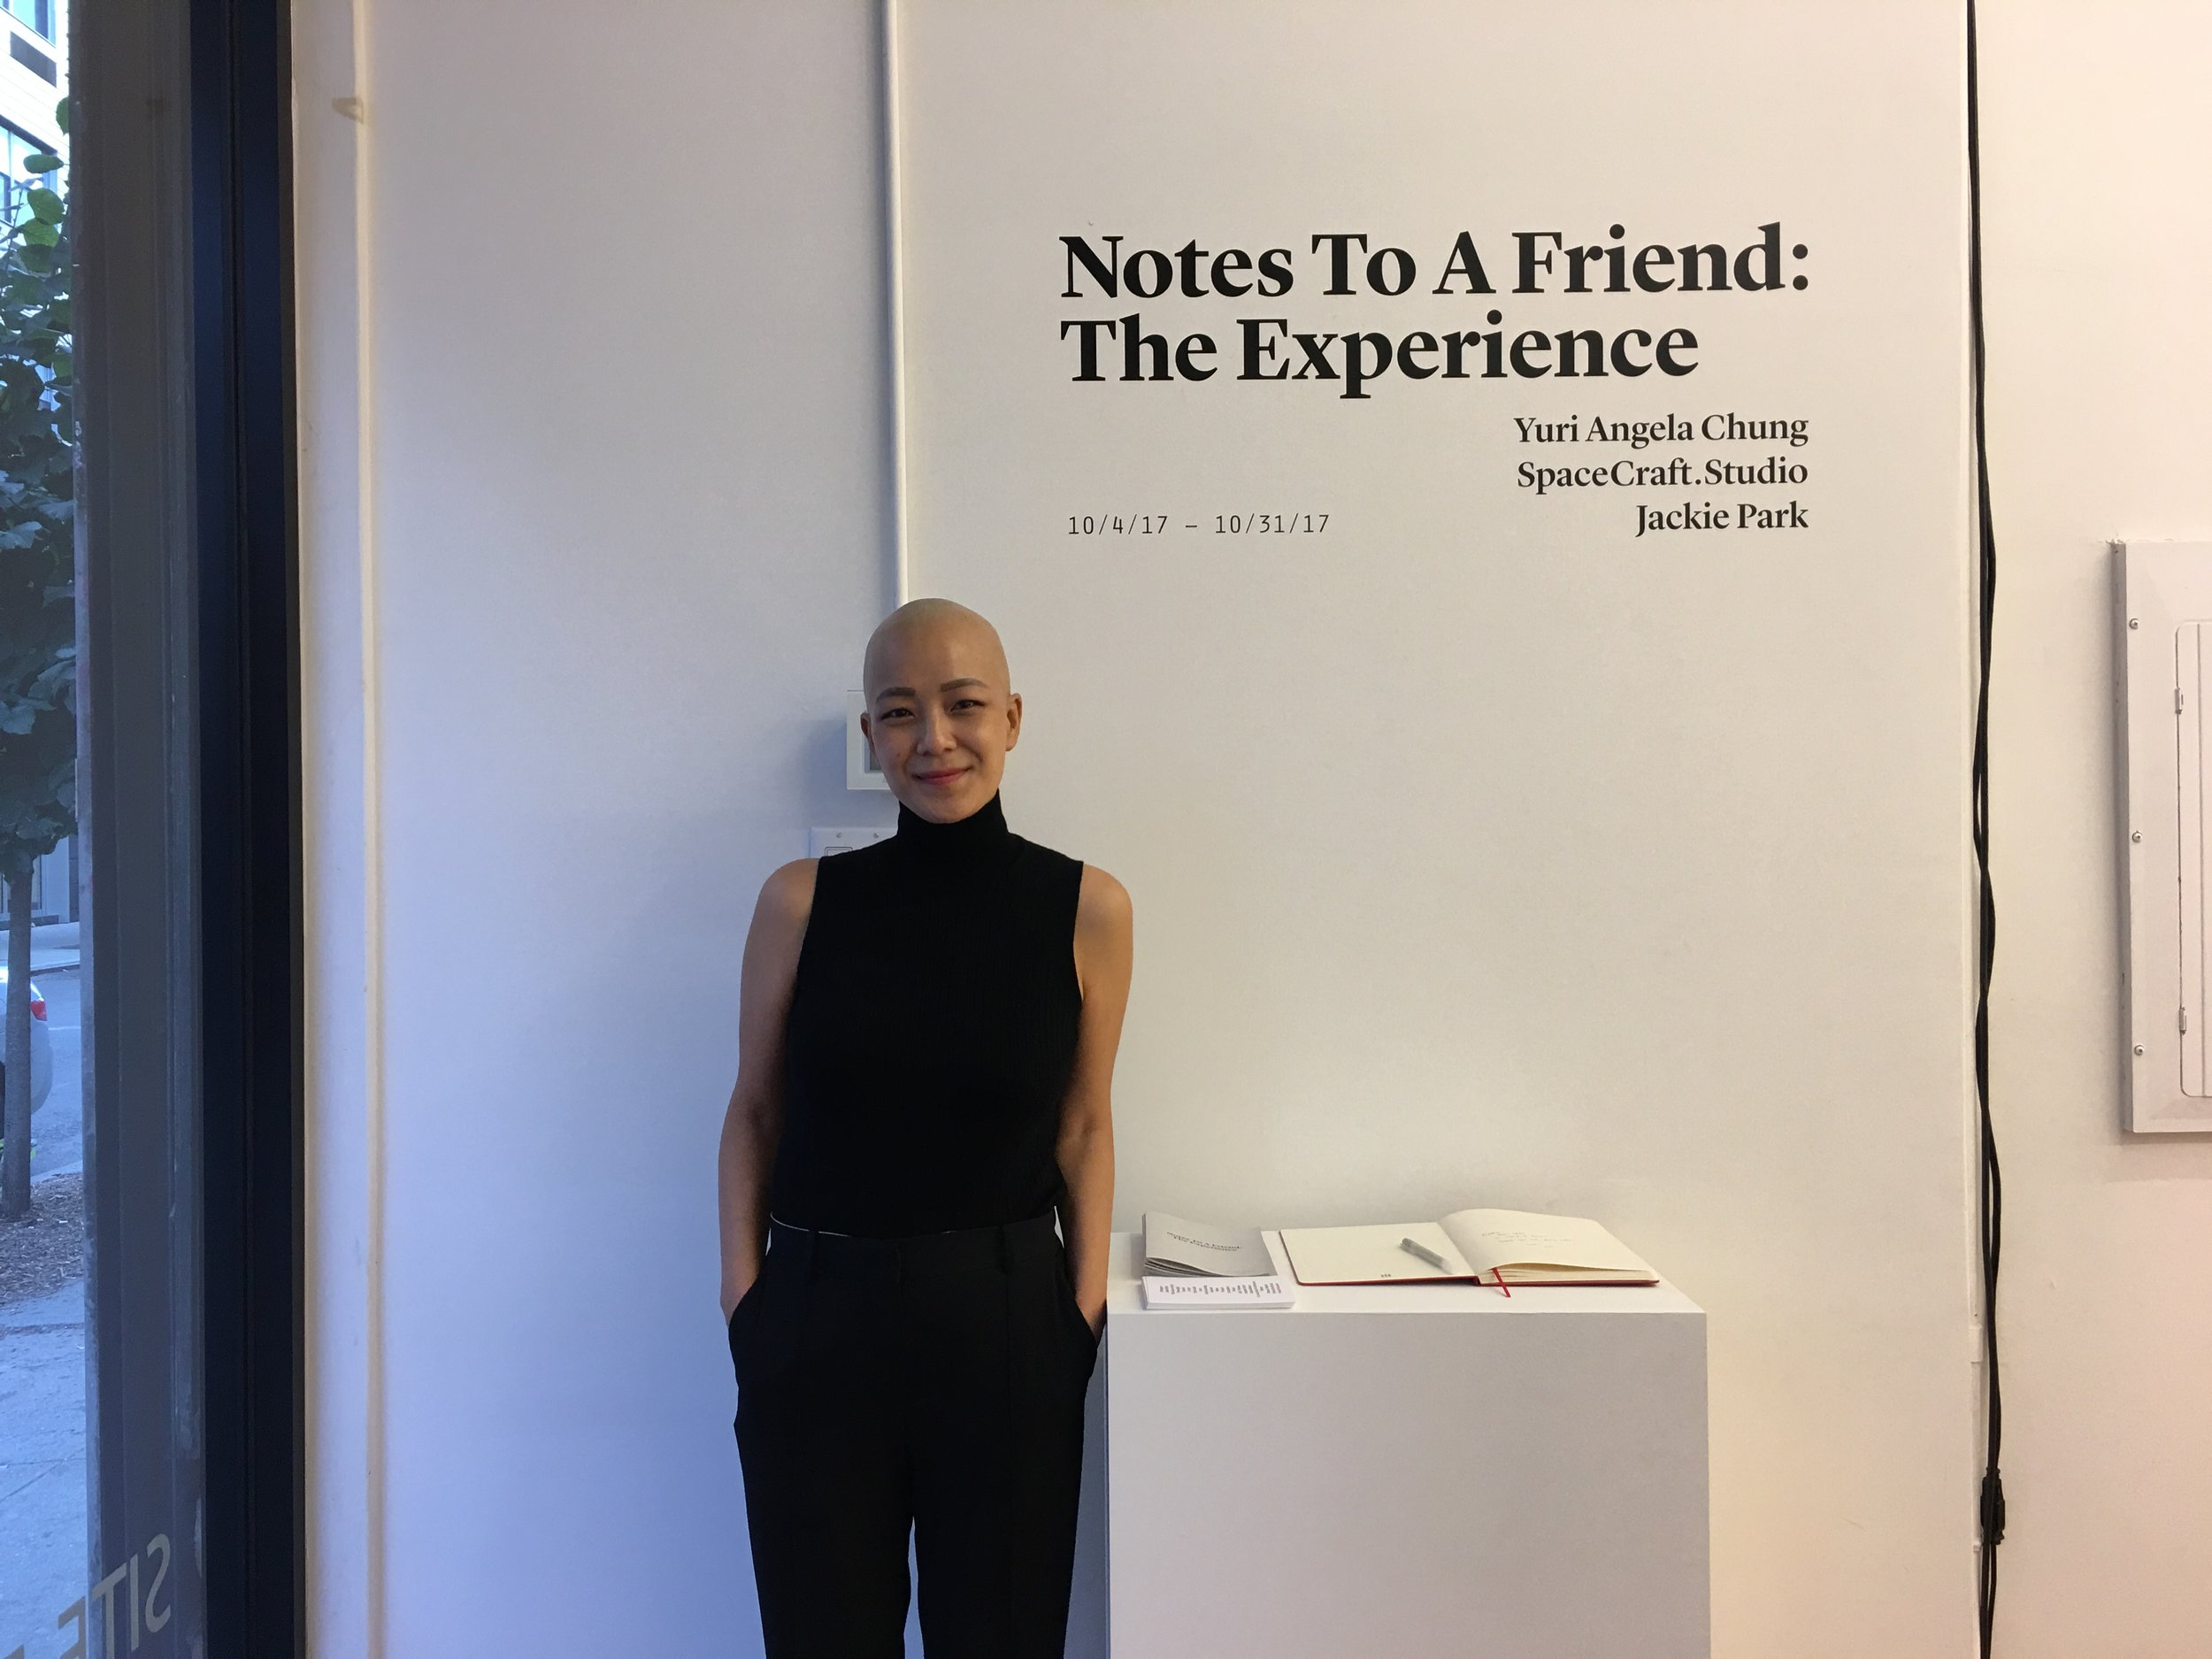 Taken while Yuri was still in breast cancer treatment, she was able to travel to New York for the opening of her  Notes to a Friend  art show. Photo: Jackie Park